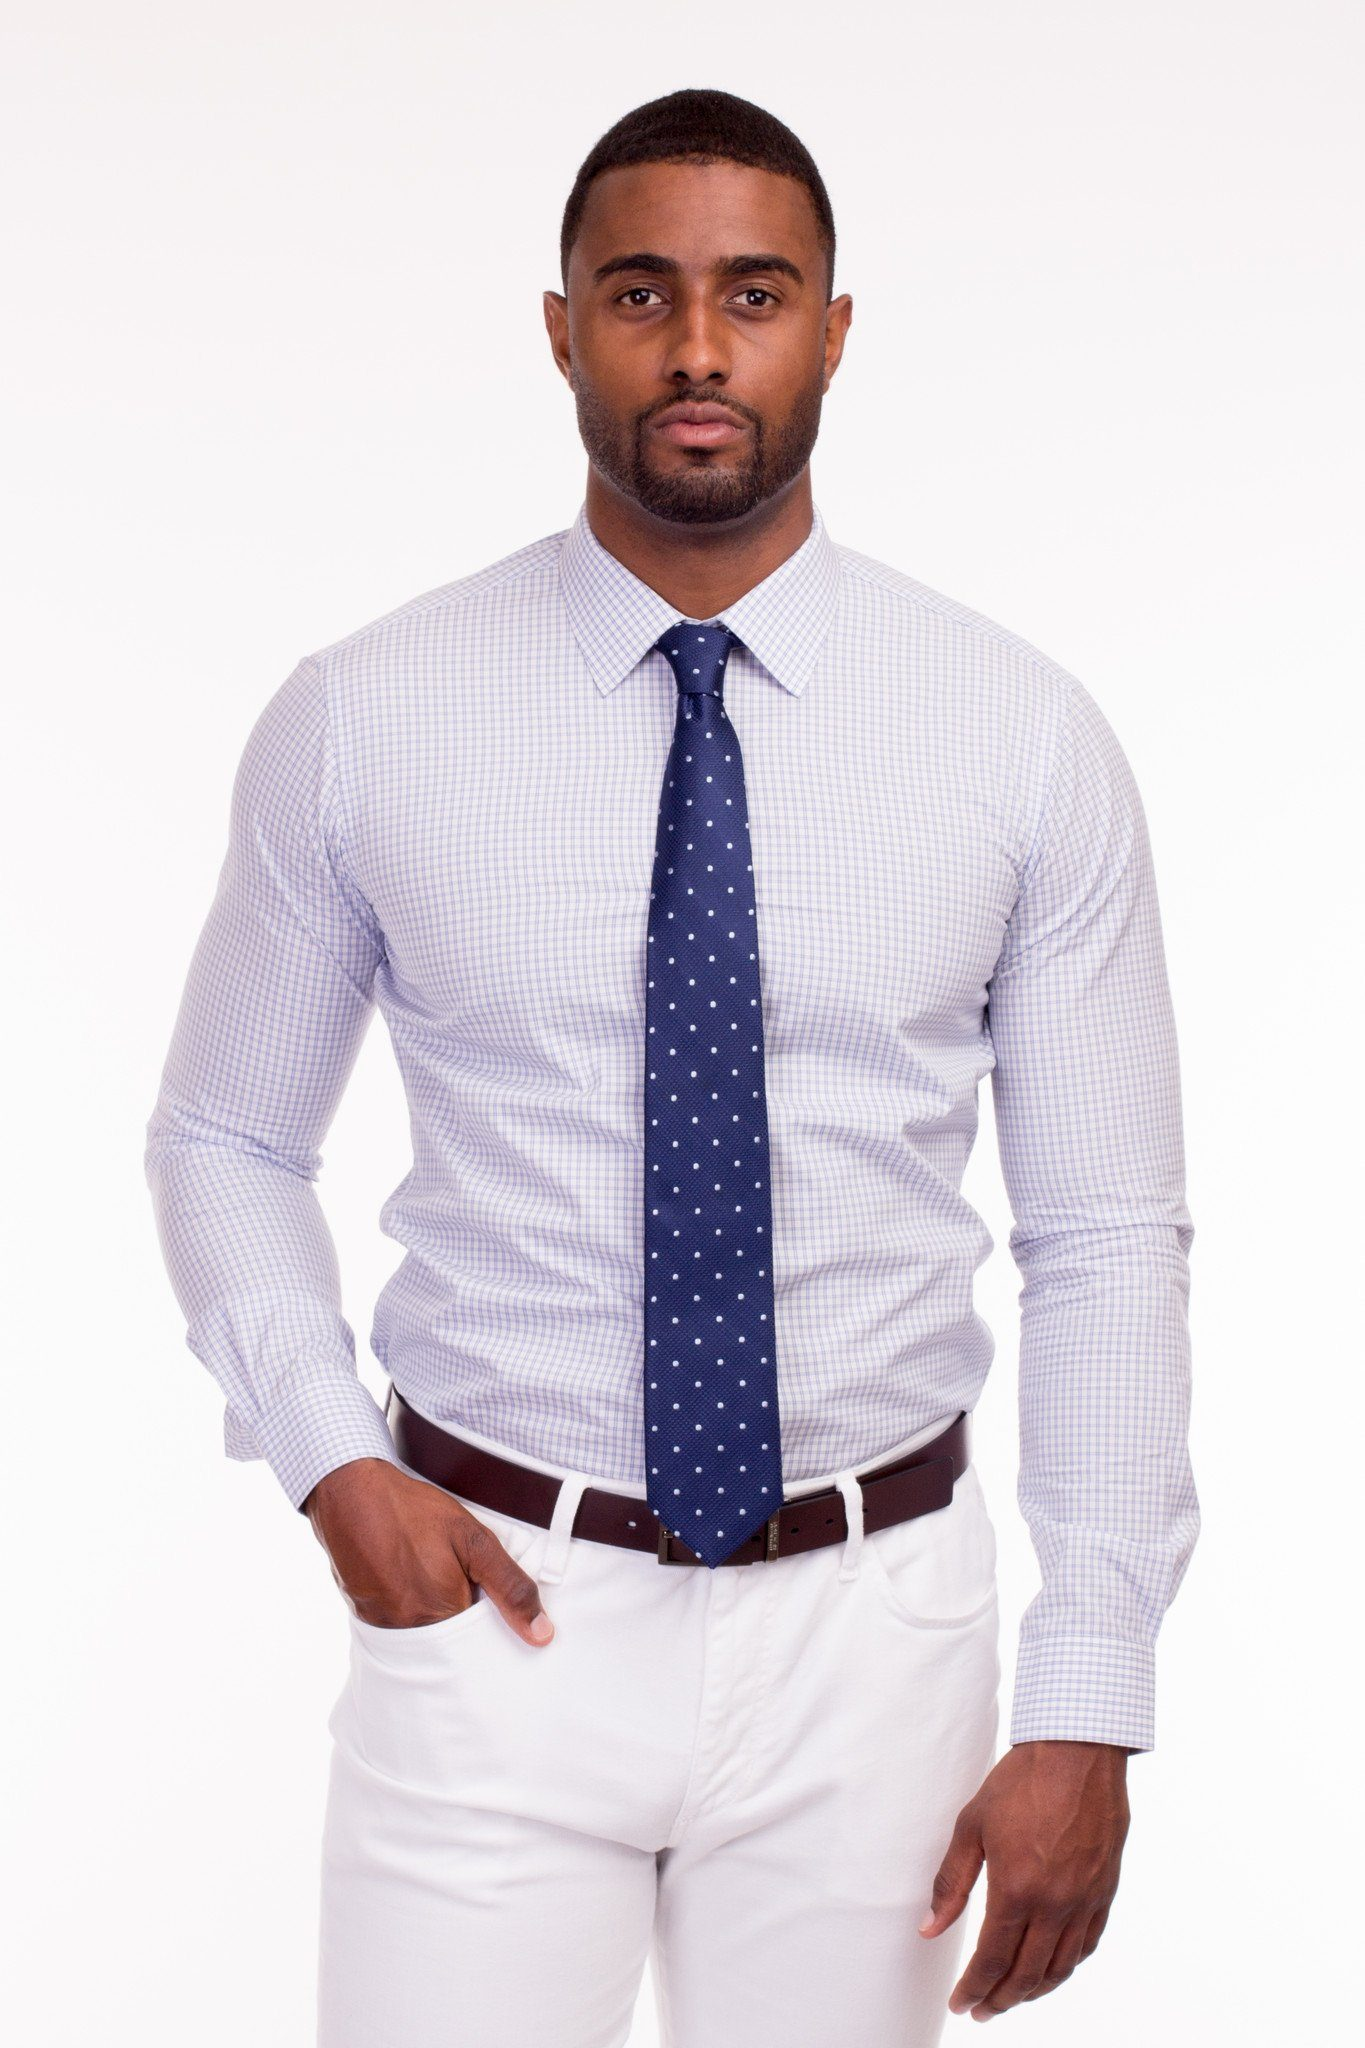 Light Blue Checked Dress Shirt - Poor Little Rich Boy Custom Men's Dress Shirts - Plrbclothing.com